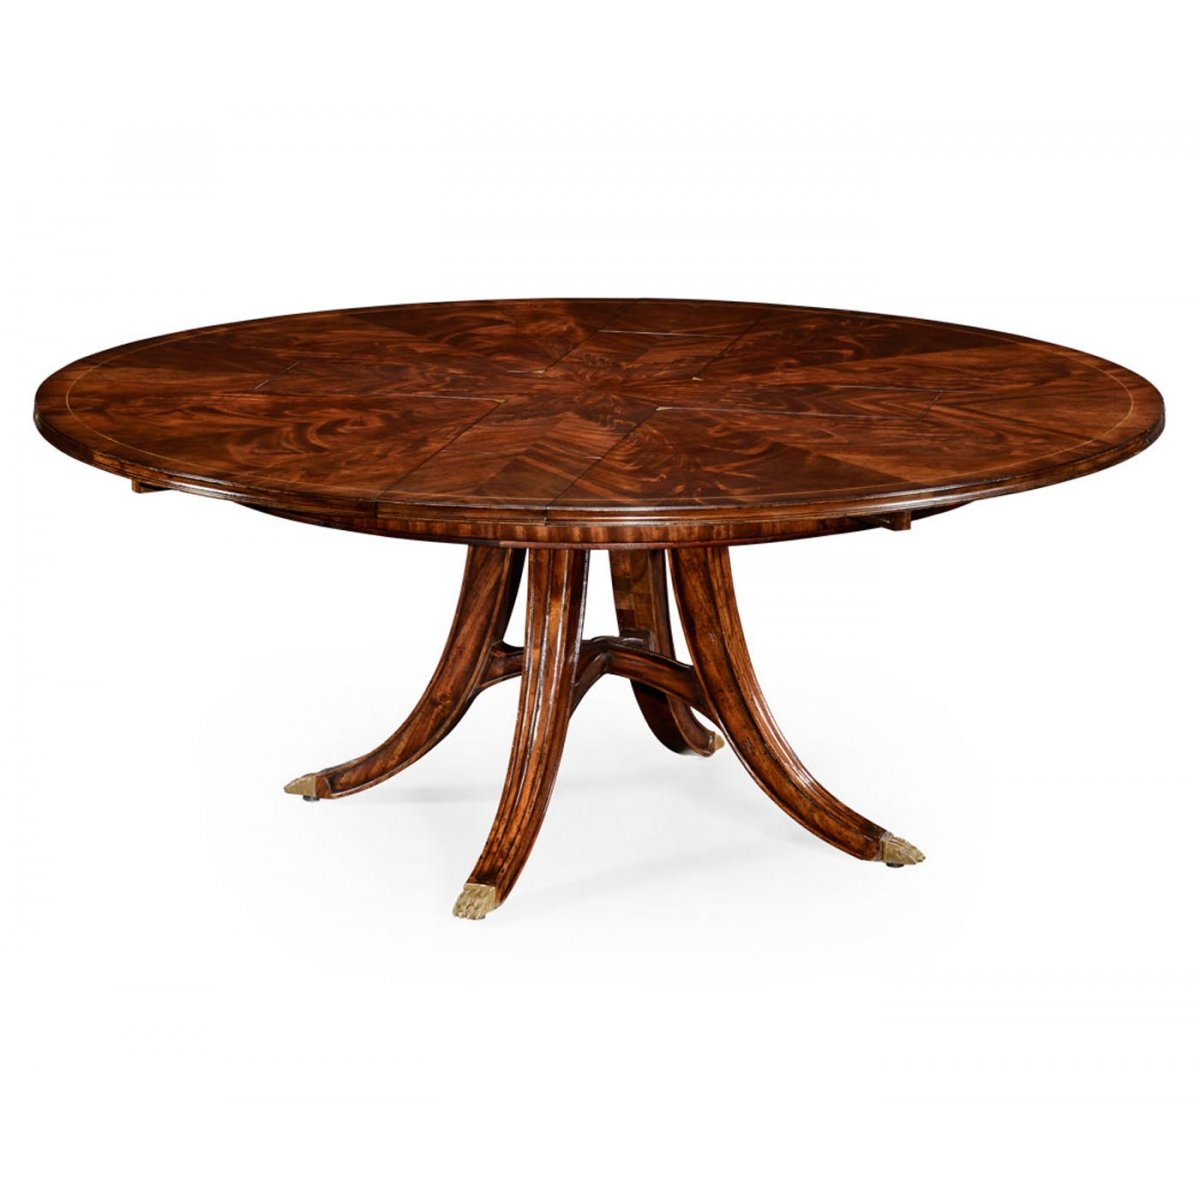 8 10 seater round extending dining table swanky interiors